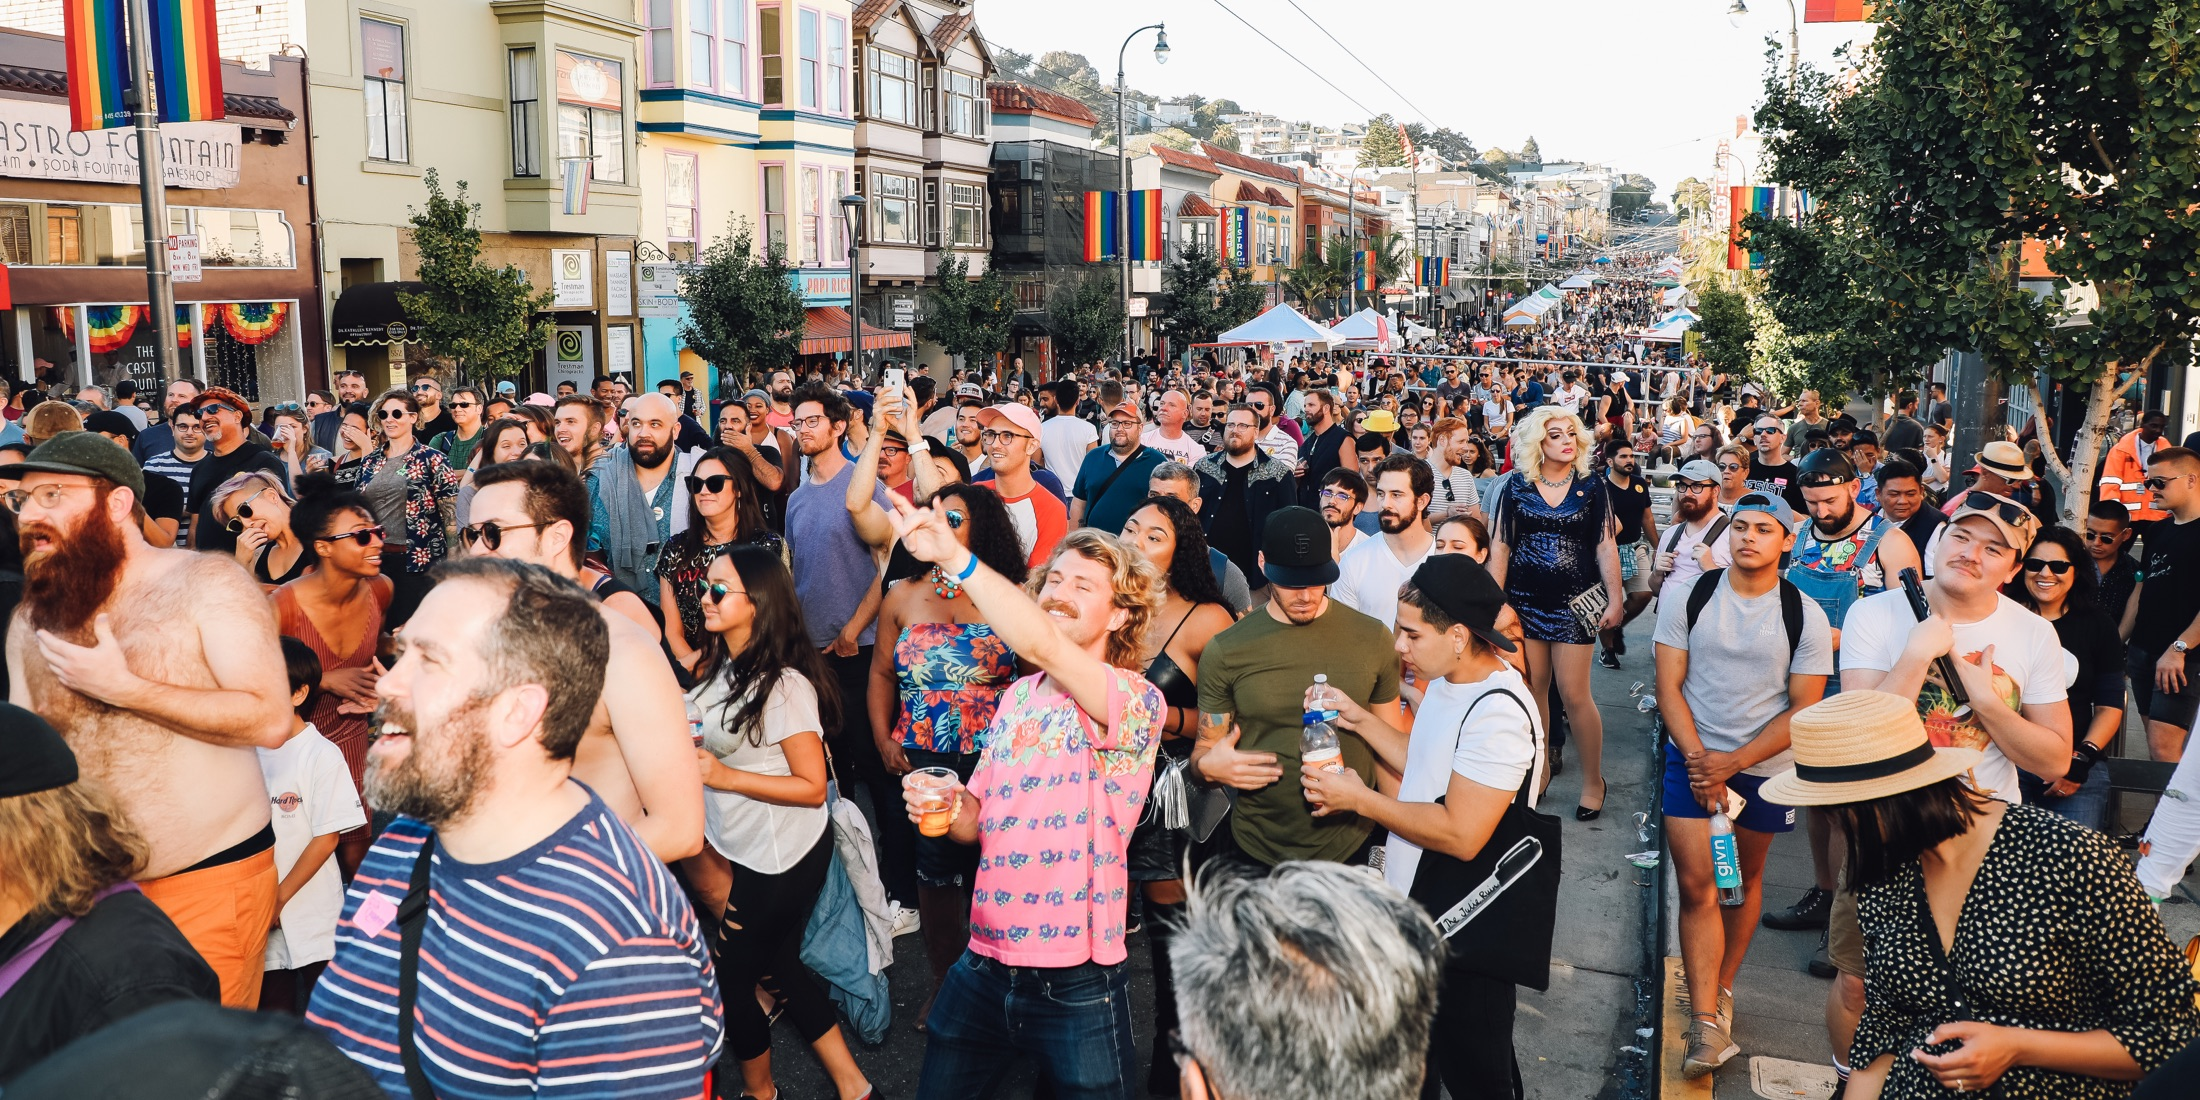 Crowds at last year's Castro Street Fair